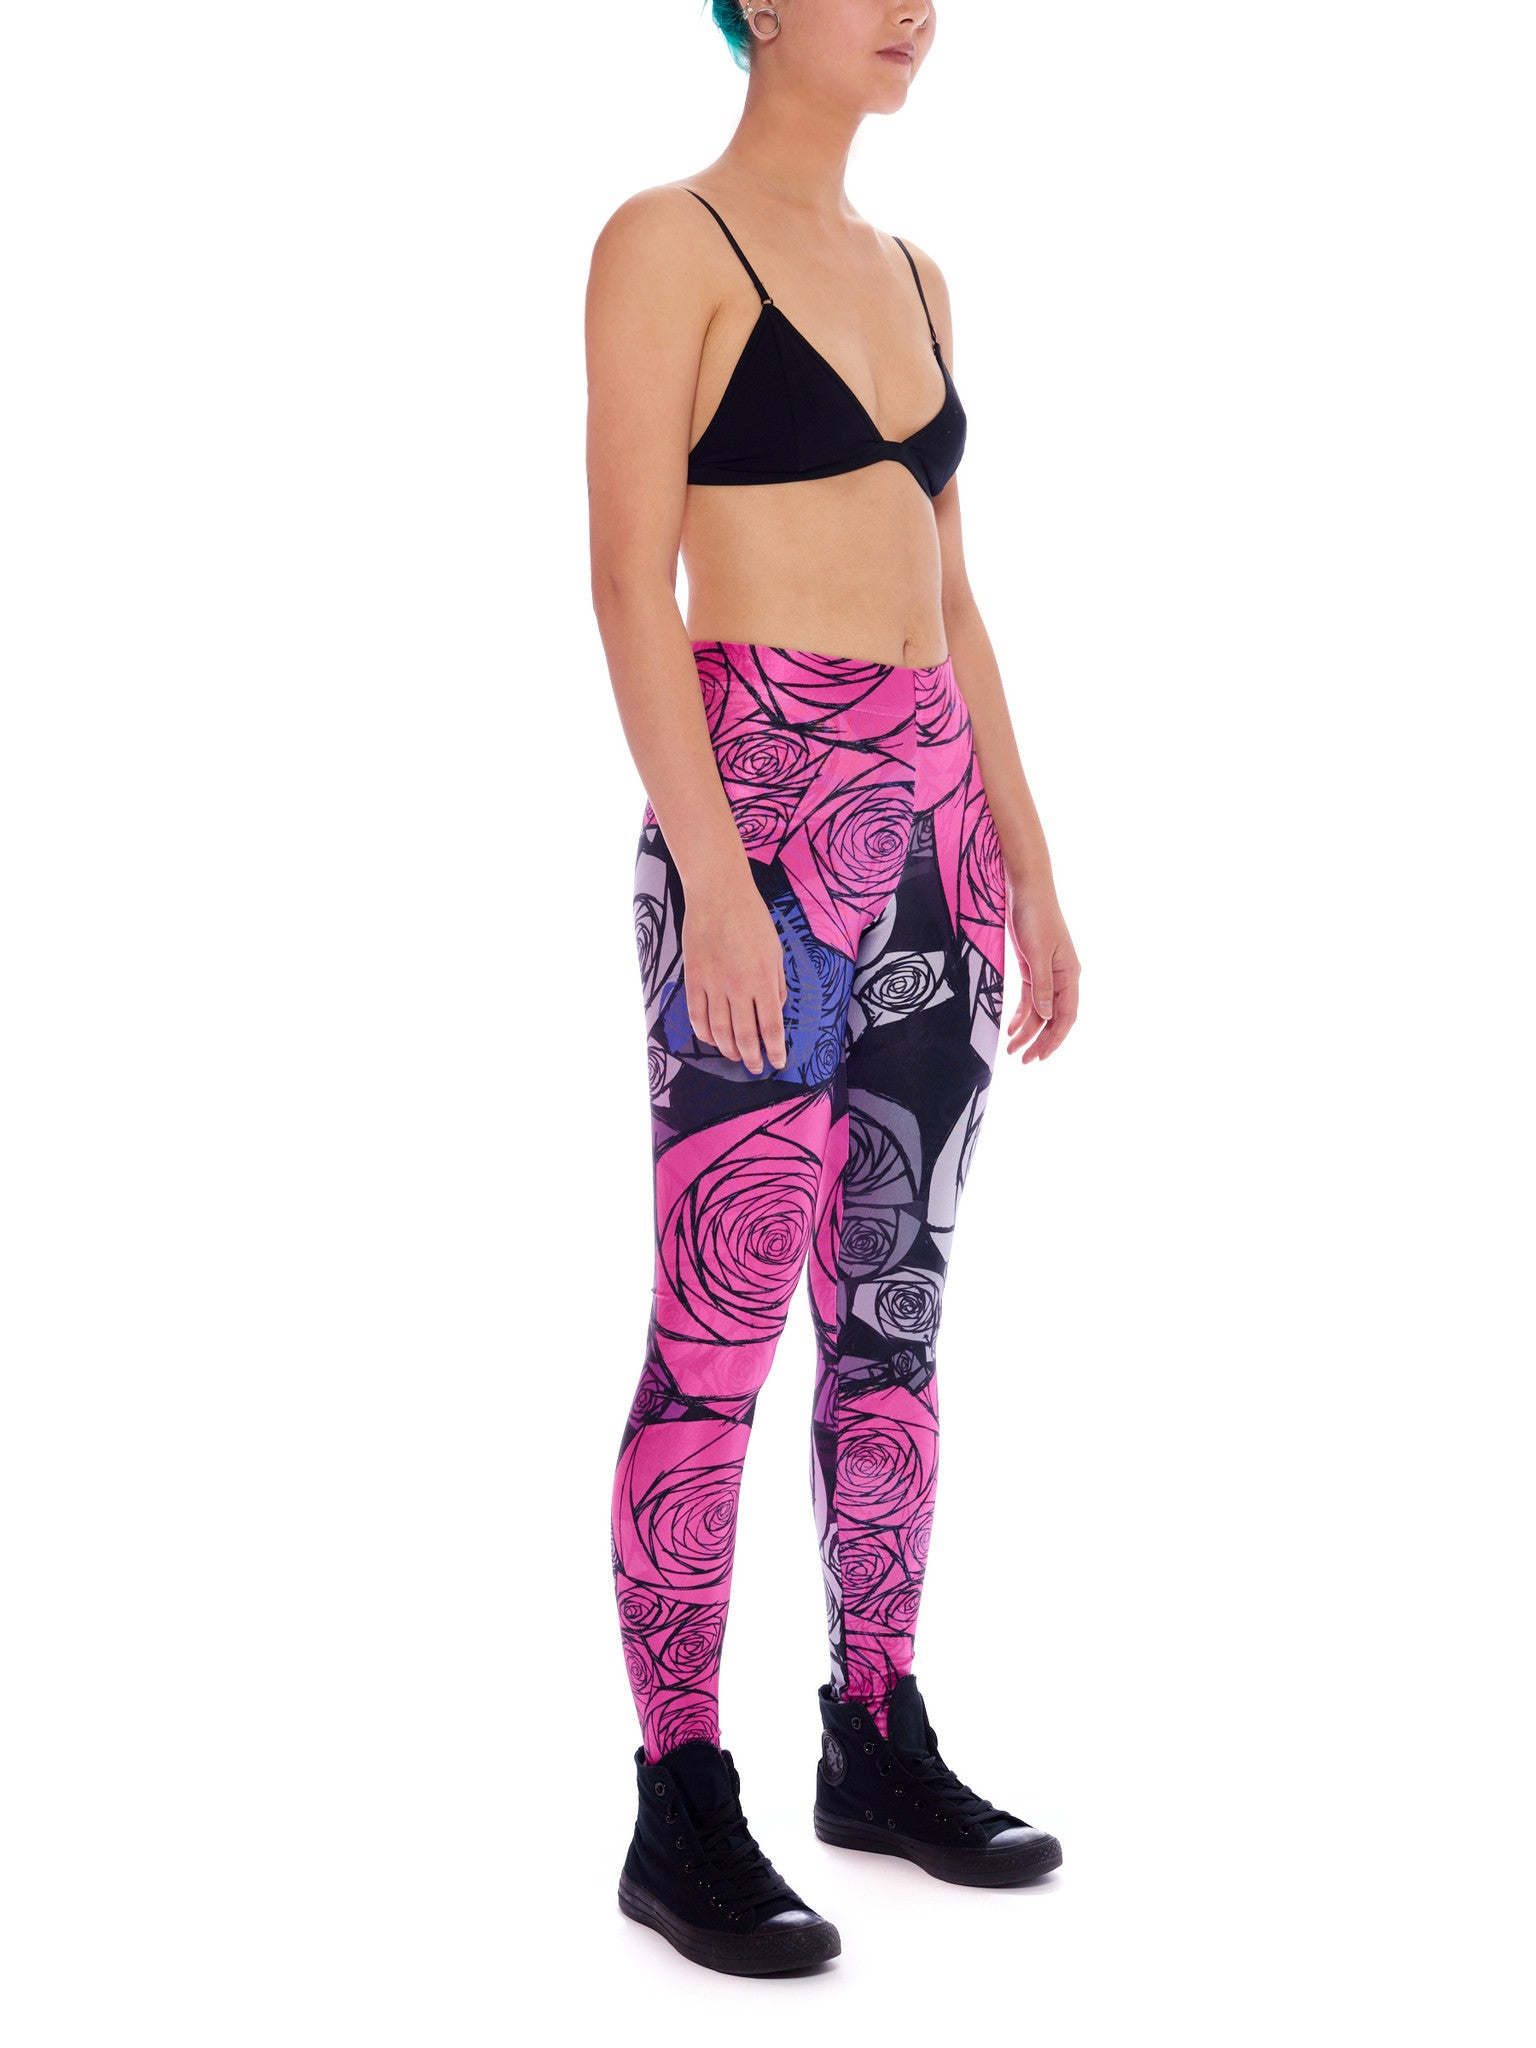 Roses Queen West Leggings